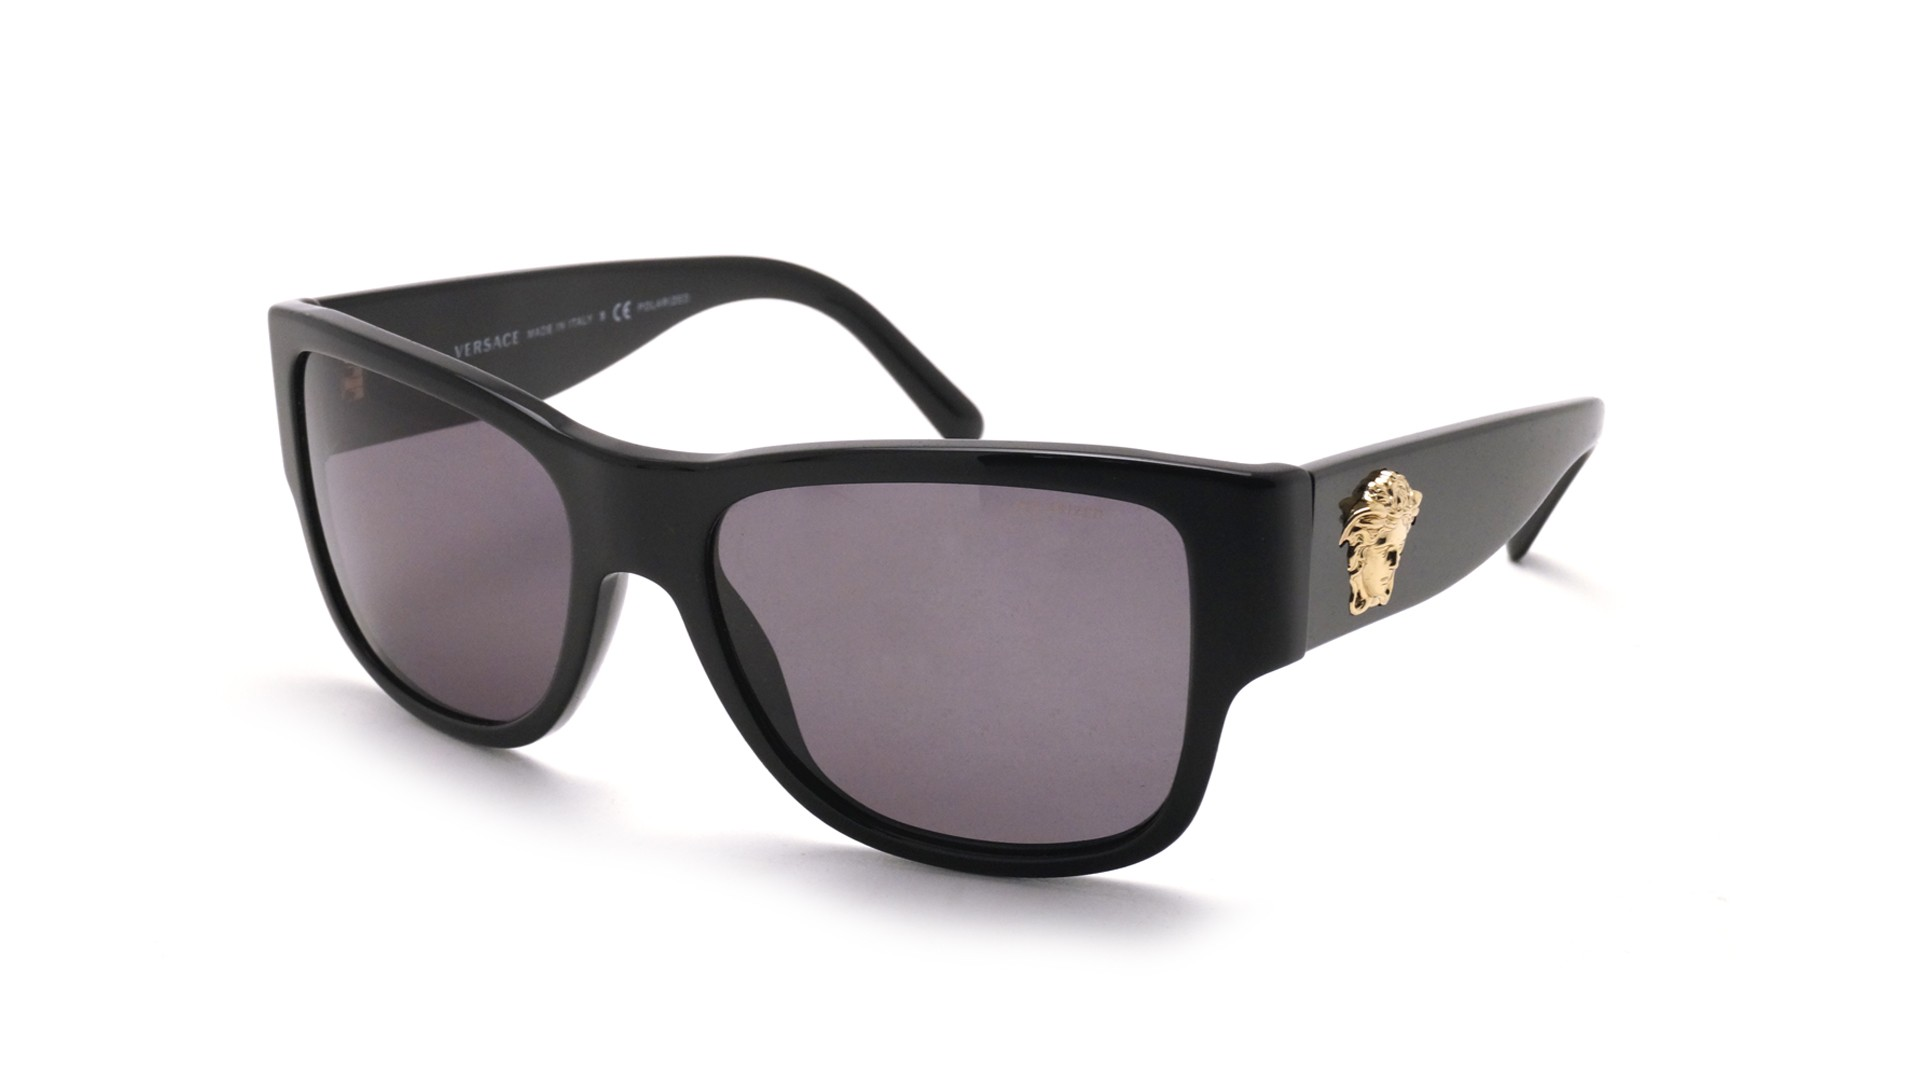 Versace Polarized Sunglasses  ve4275 gb1 81 58 16 black polarized visiofactory